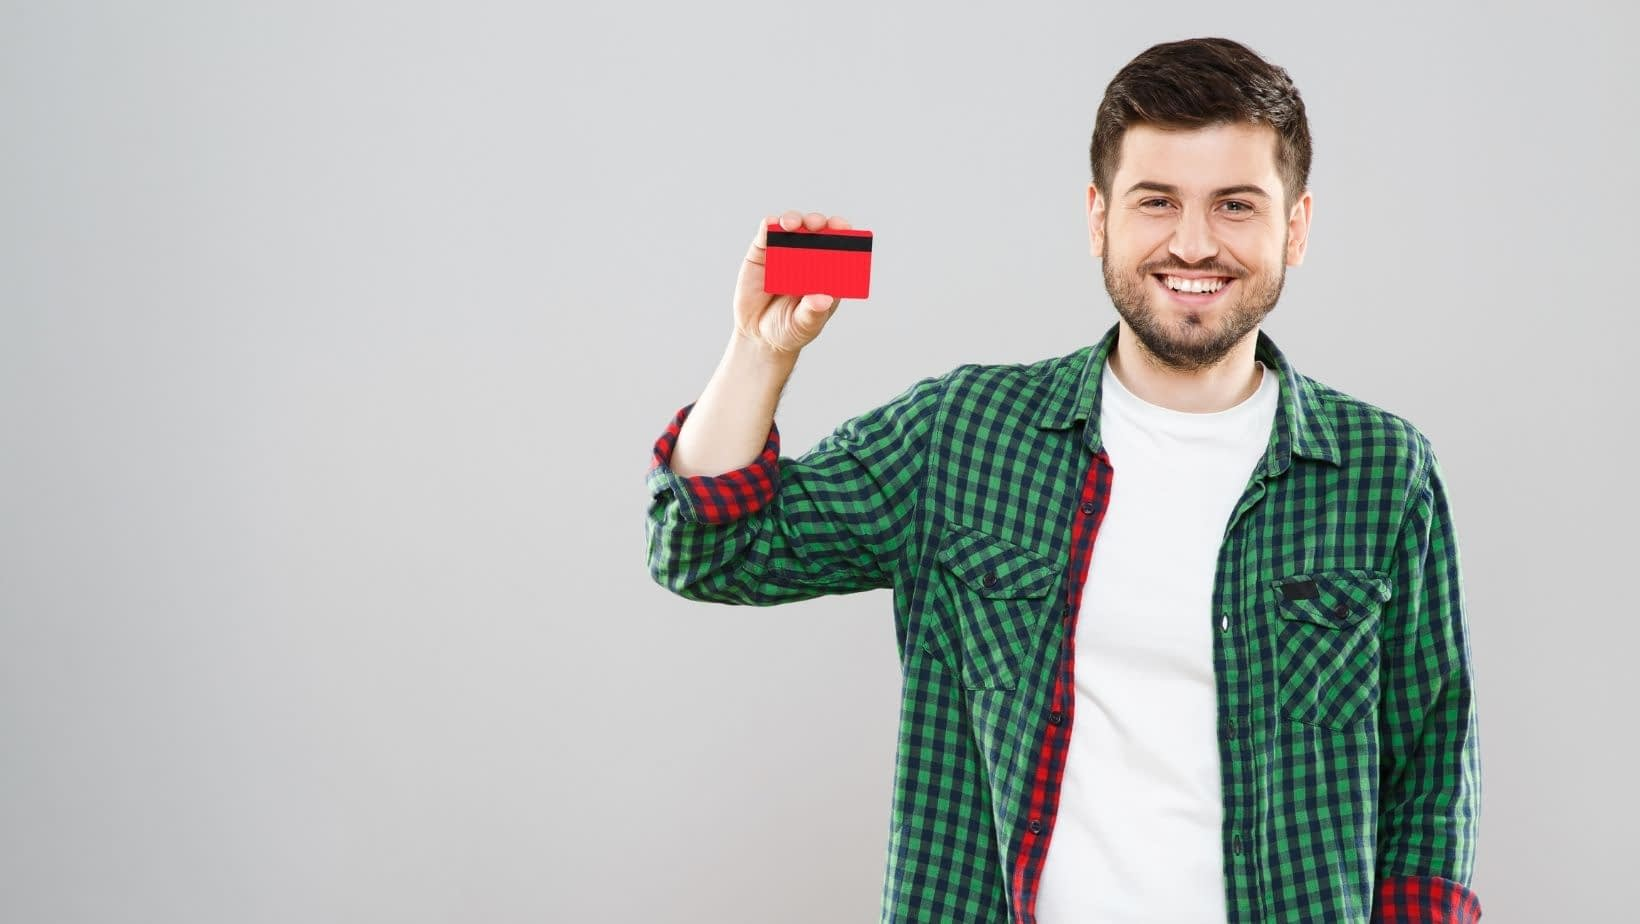 If you've signed up to be a Dasher for DoorDash, you might be wondering what this red credit card you received with orientation is. In this article, we fill you in on what a DoorDash Red Card is and how to use it, along with other helpful hints about your new Red Card!